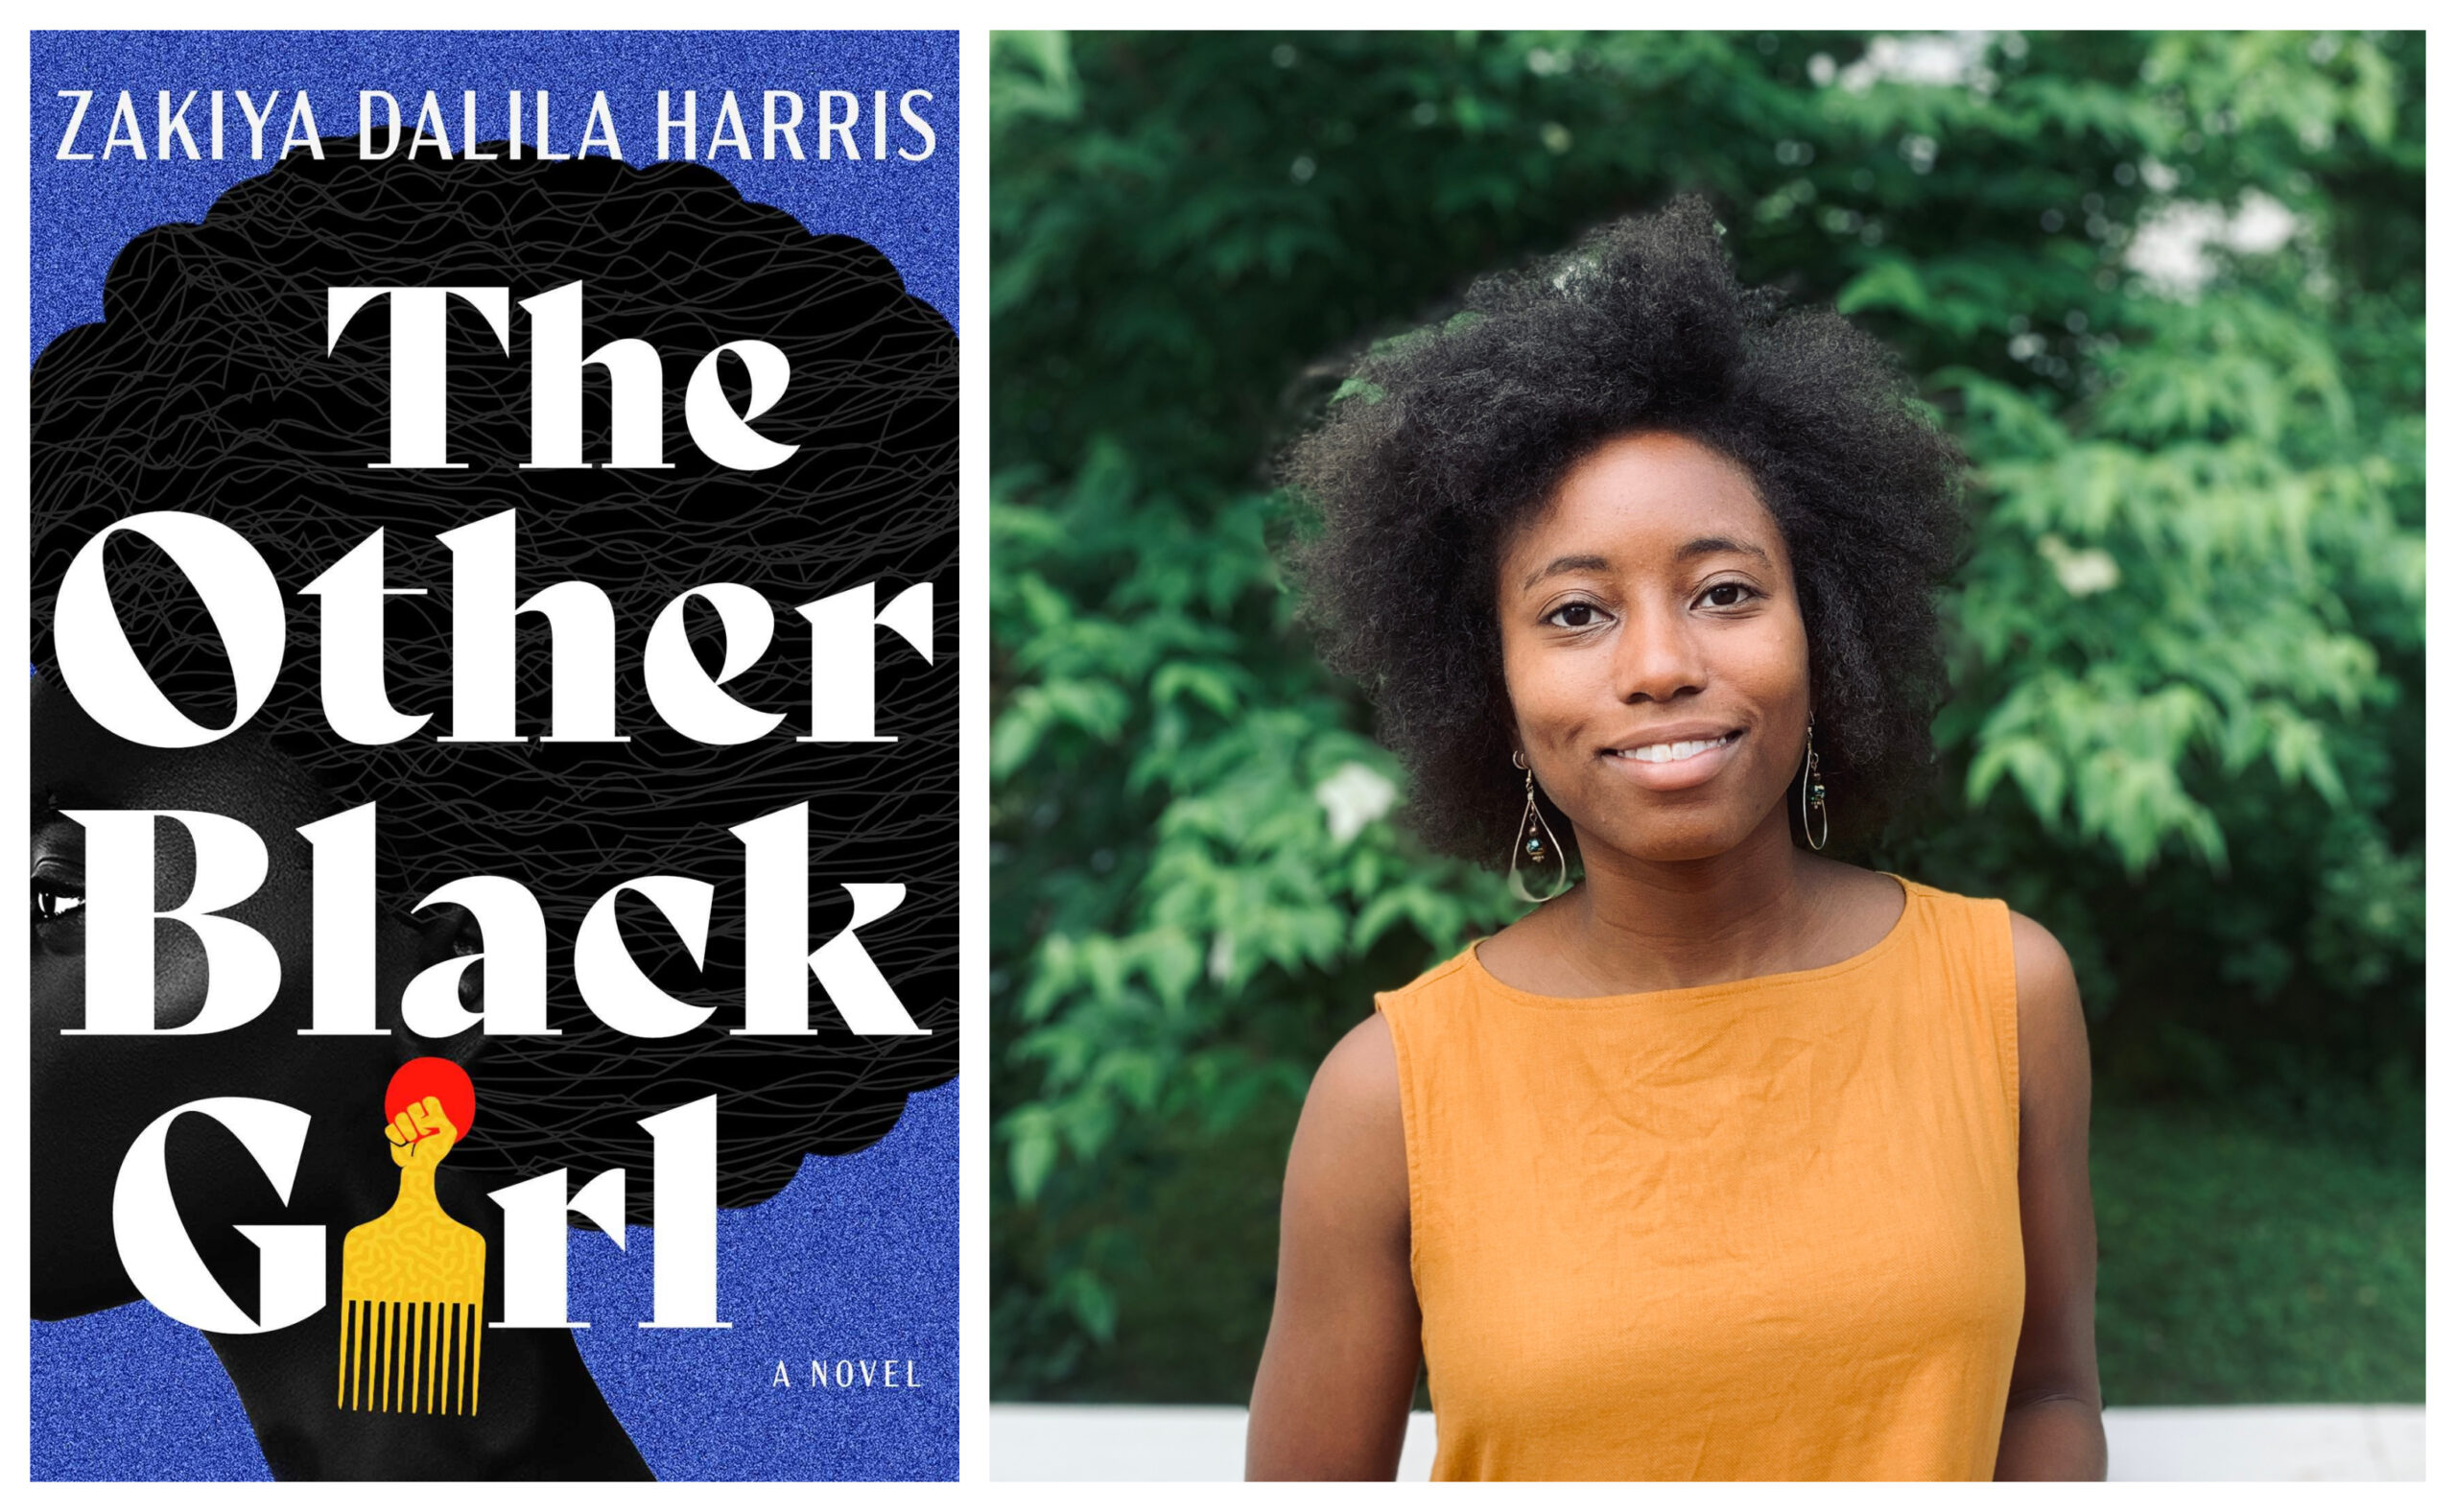 Book cover for The Other Black Girl by Zakiya Dalila Harris